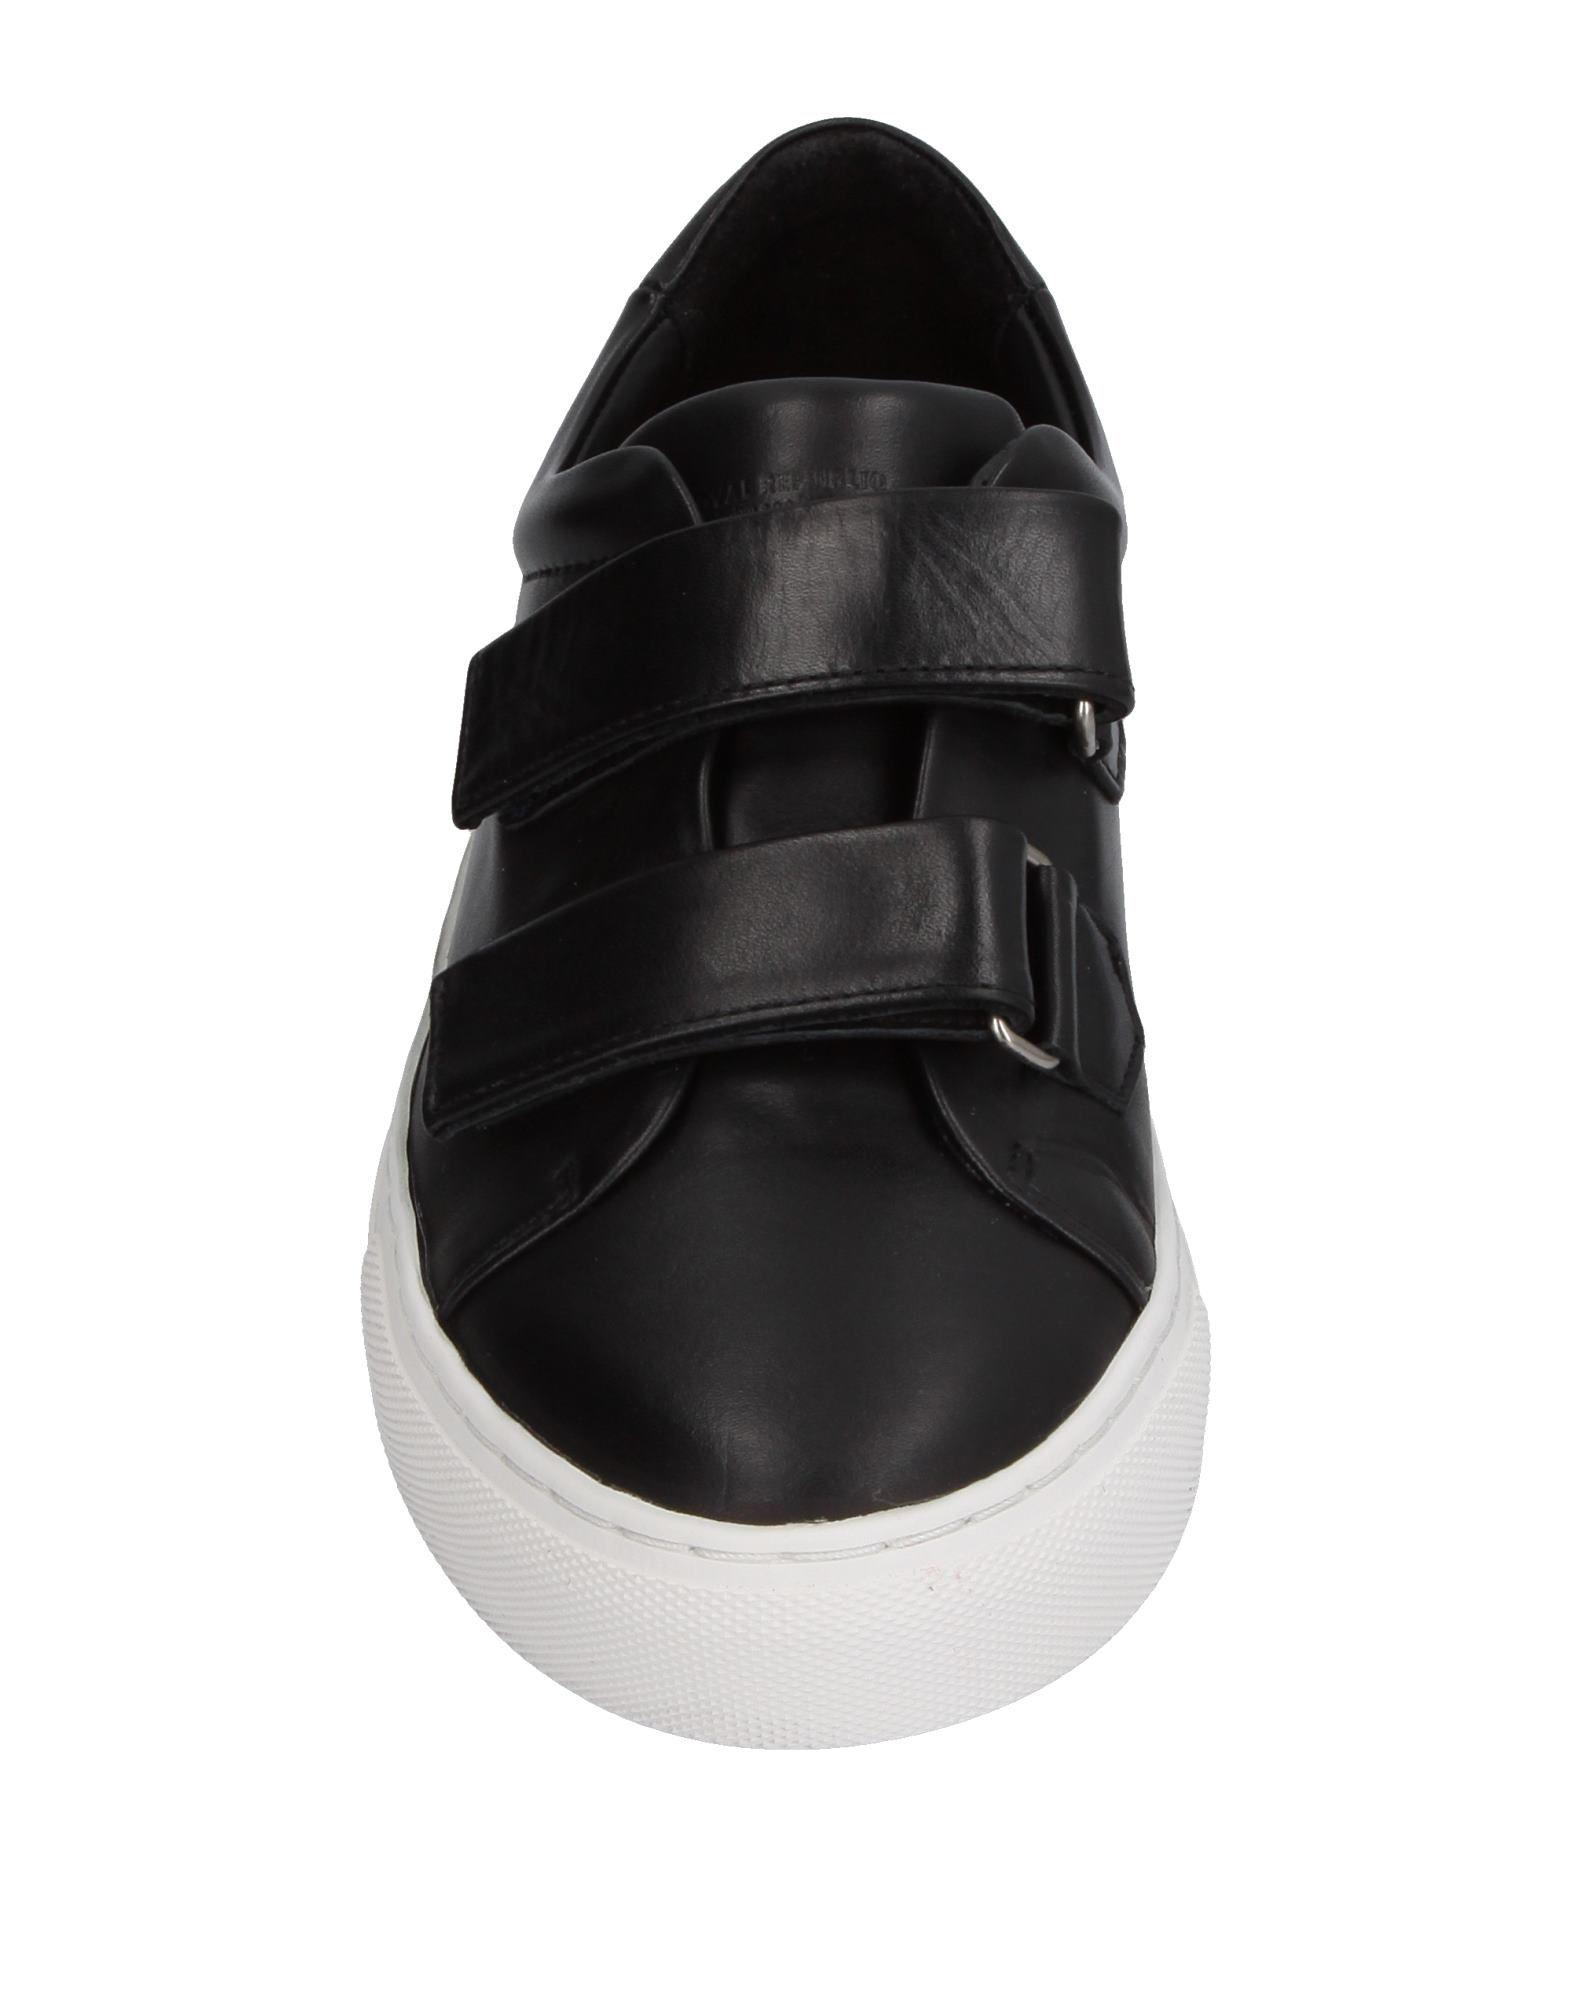 Royal Republiq Leather Low-tops & Sneakers in Black